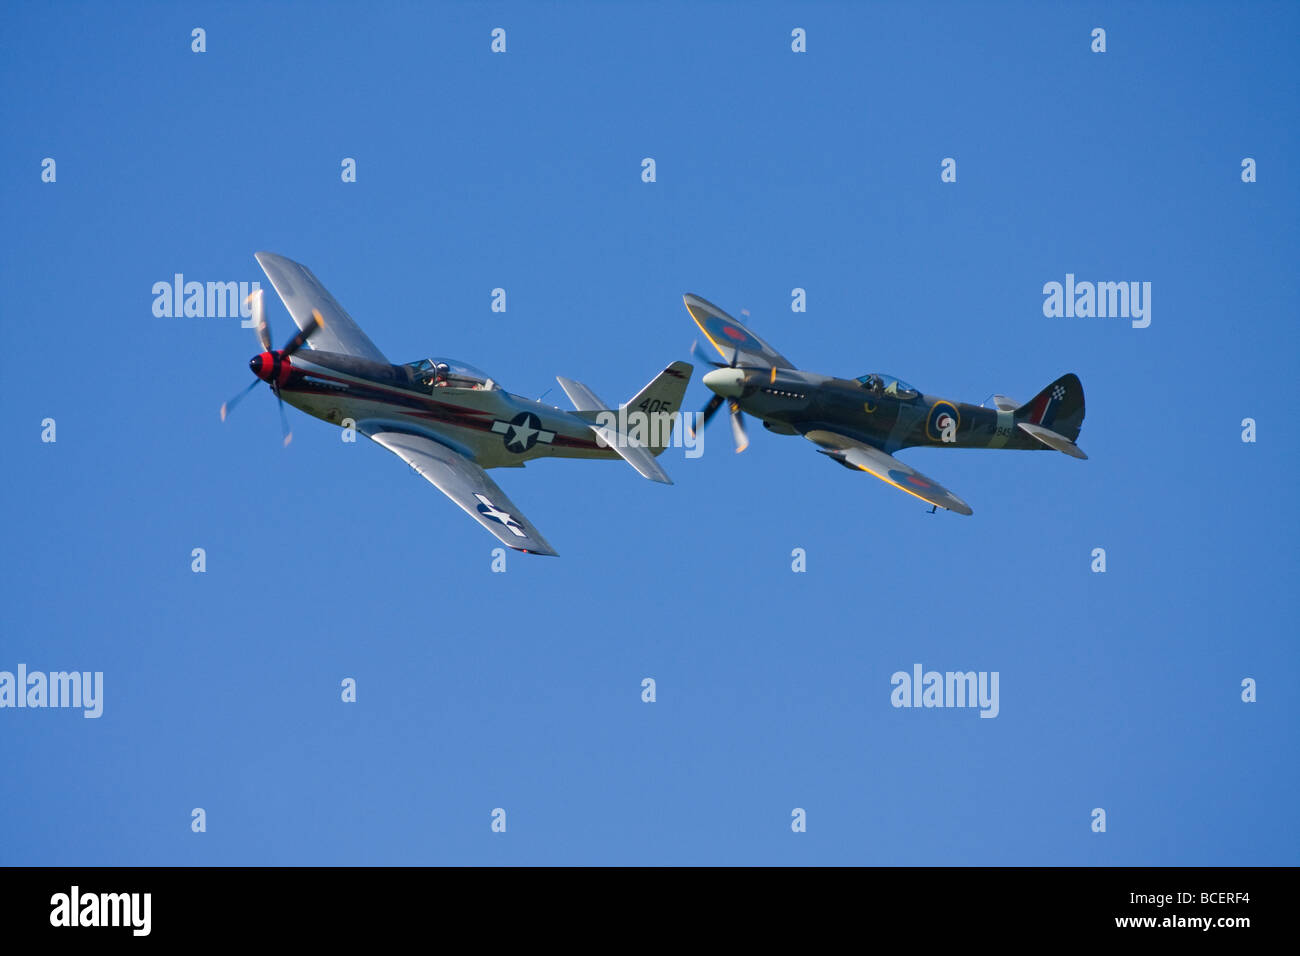 Old Spitfire and Mustang propeller planes at an airshow - Stock Image